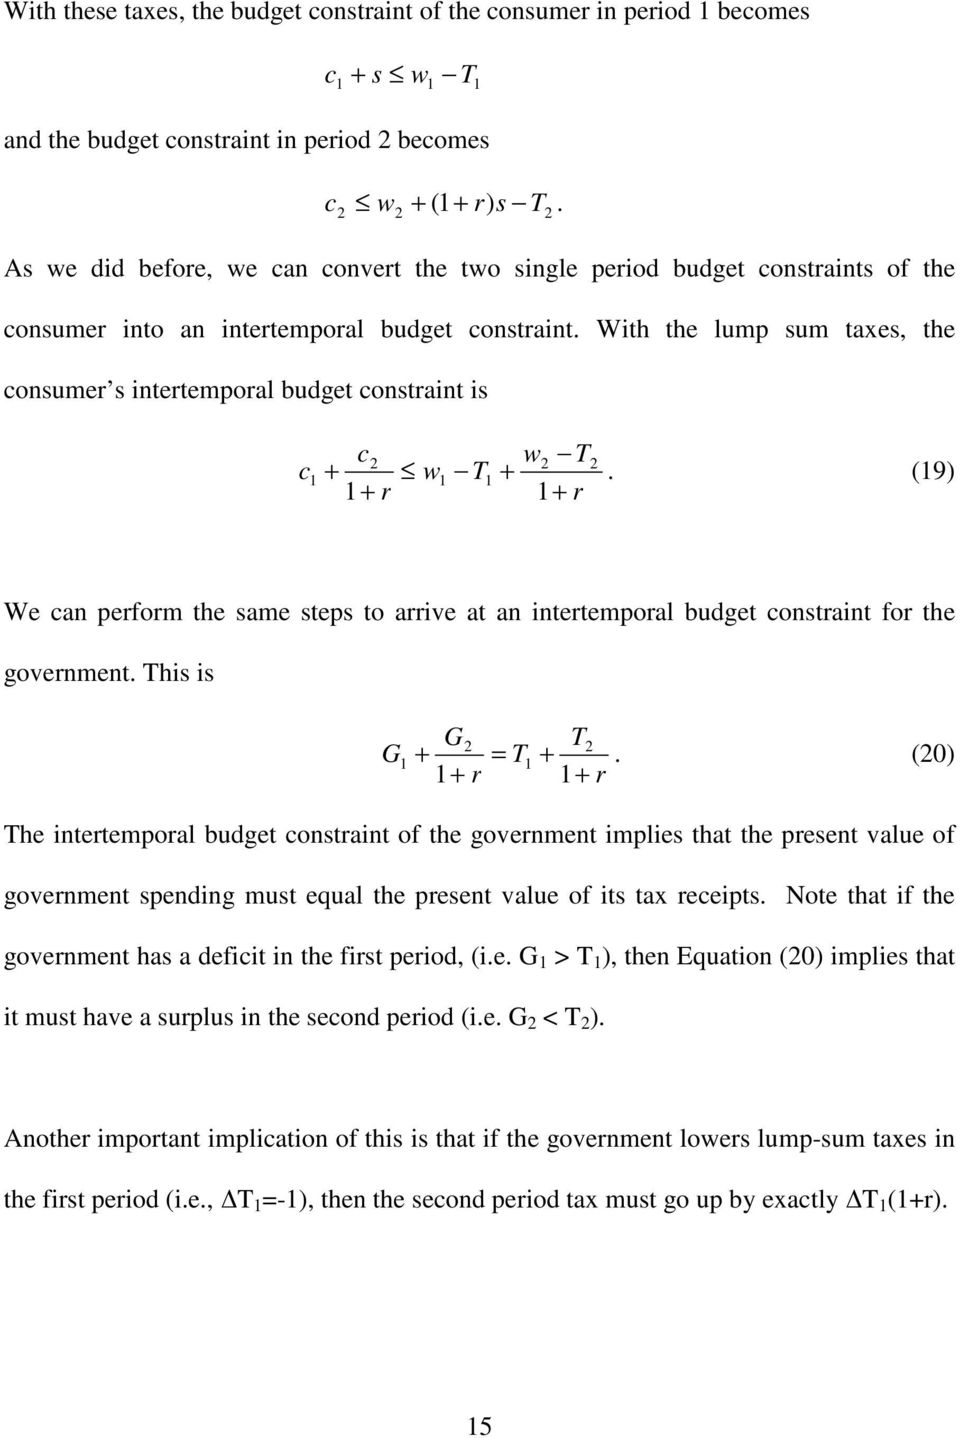 With the lump sum taxes, the consume s intetempoal budget constaint is c w T c + w T +. (9) + + We can pefom the same steps to aive at an intetempoal budget constaint fo the govenment.